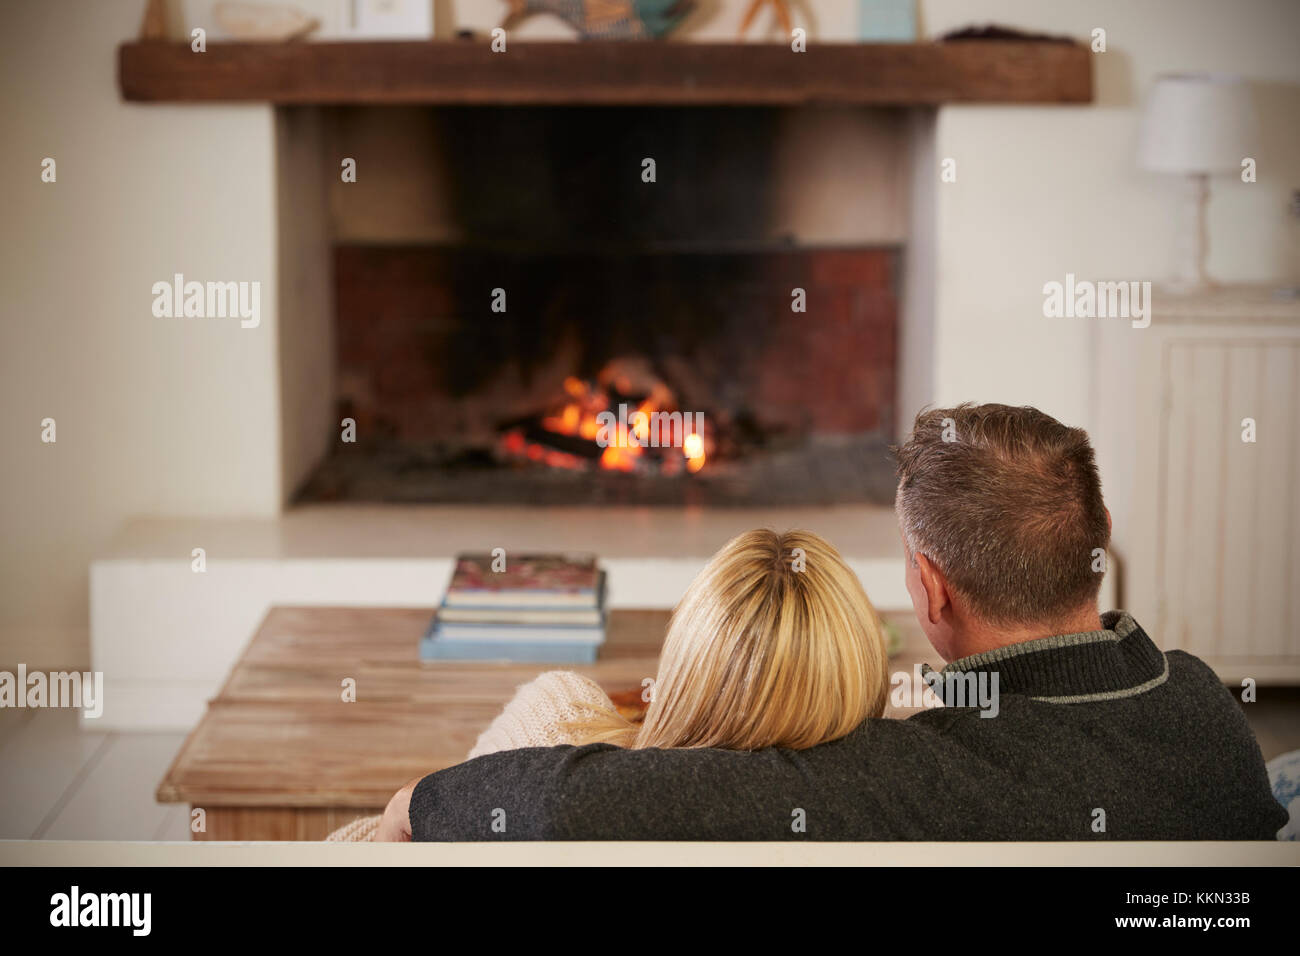 Lounge Fire High Resolution Stock Photography And Images Alamy